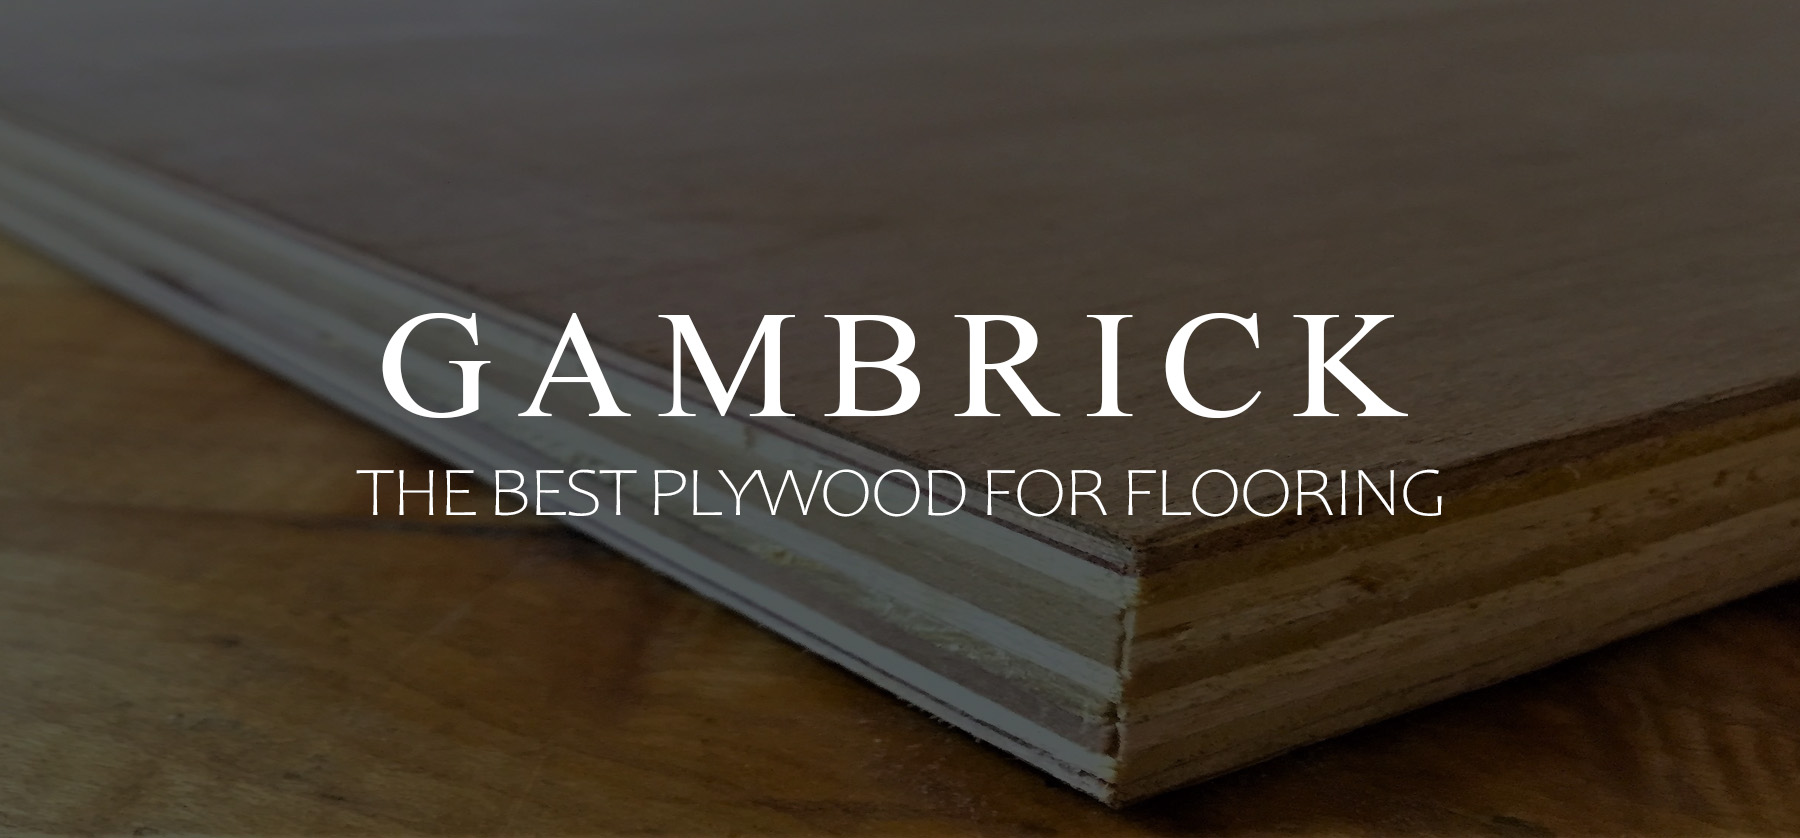 the best plywood for flooring banner pic